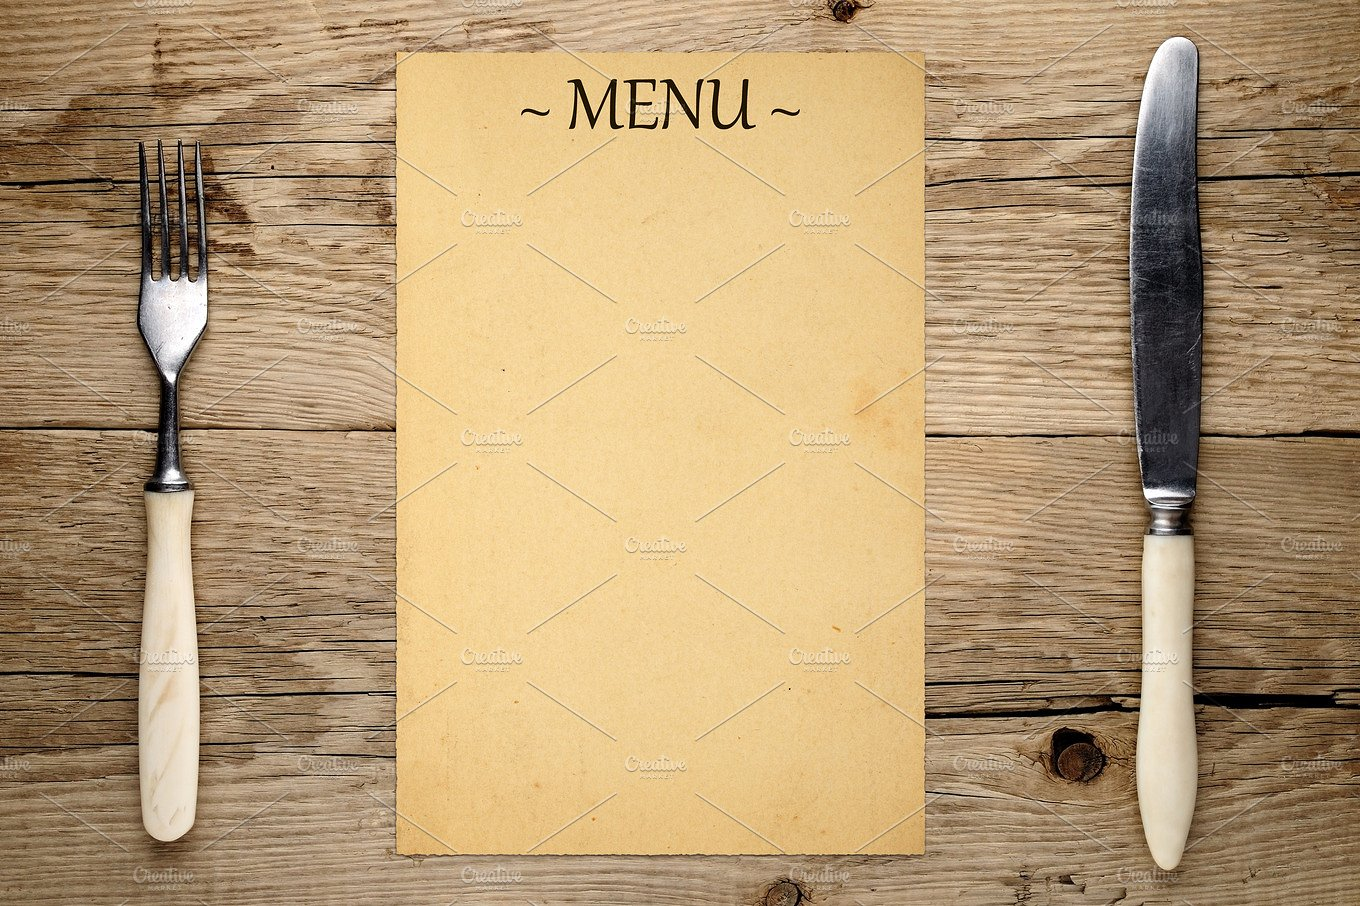 16 blank menu designs psd vector format download for Menue templates